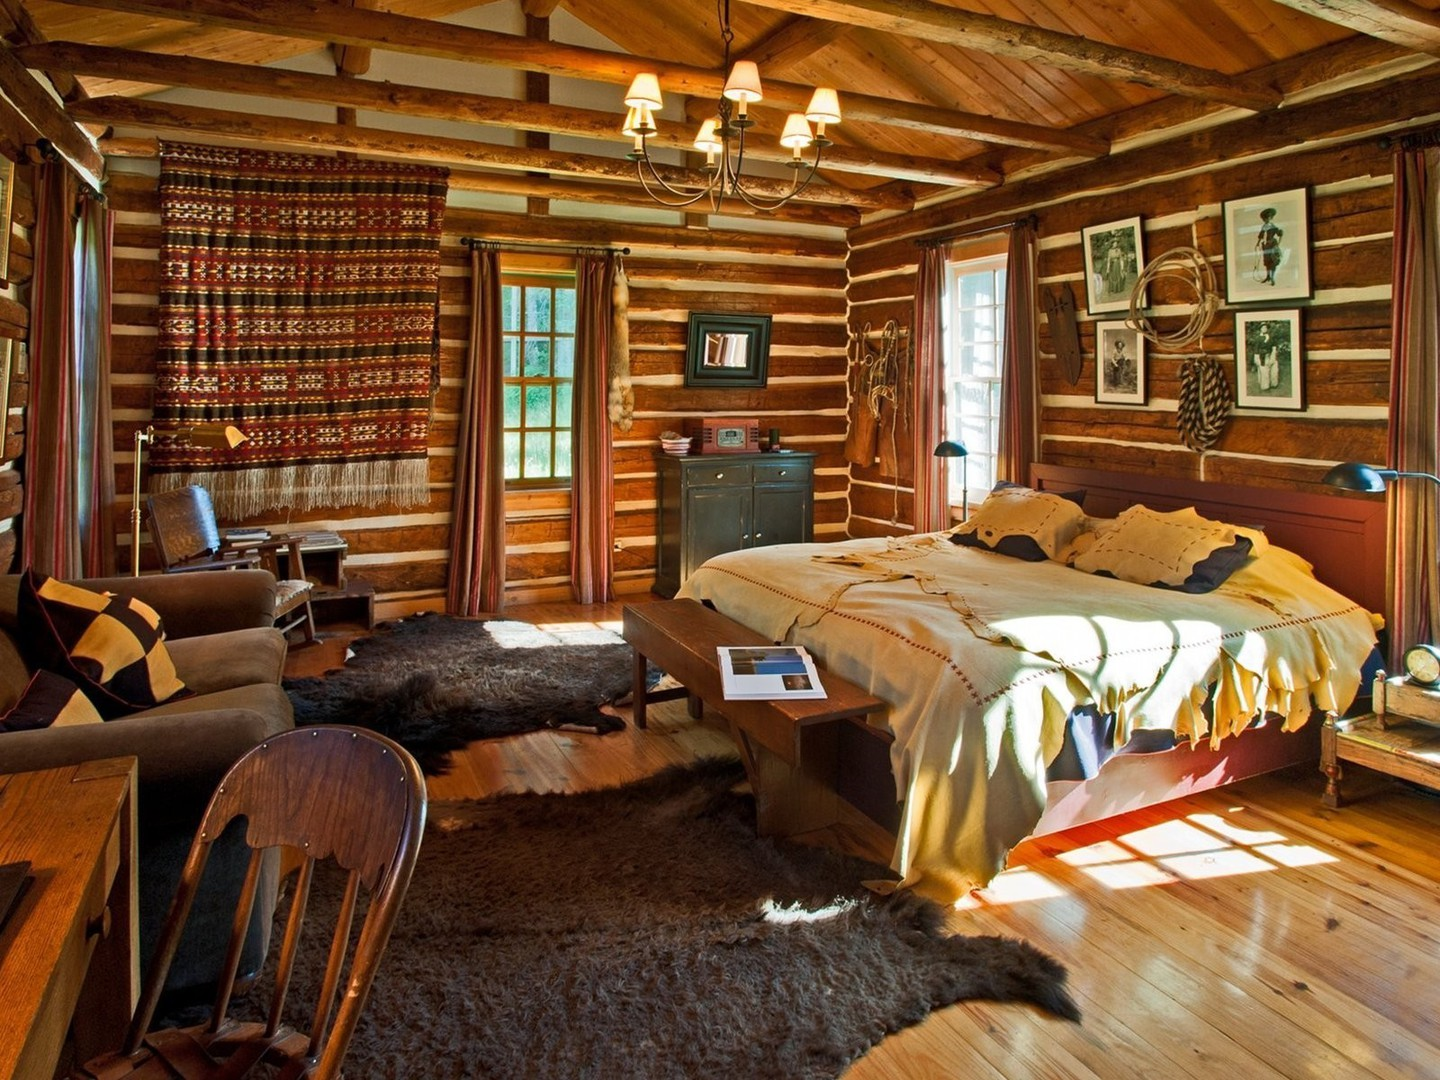 Log Cabin Bedroom Suite Wallpaper Allwallpaper In 6573